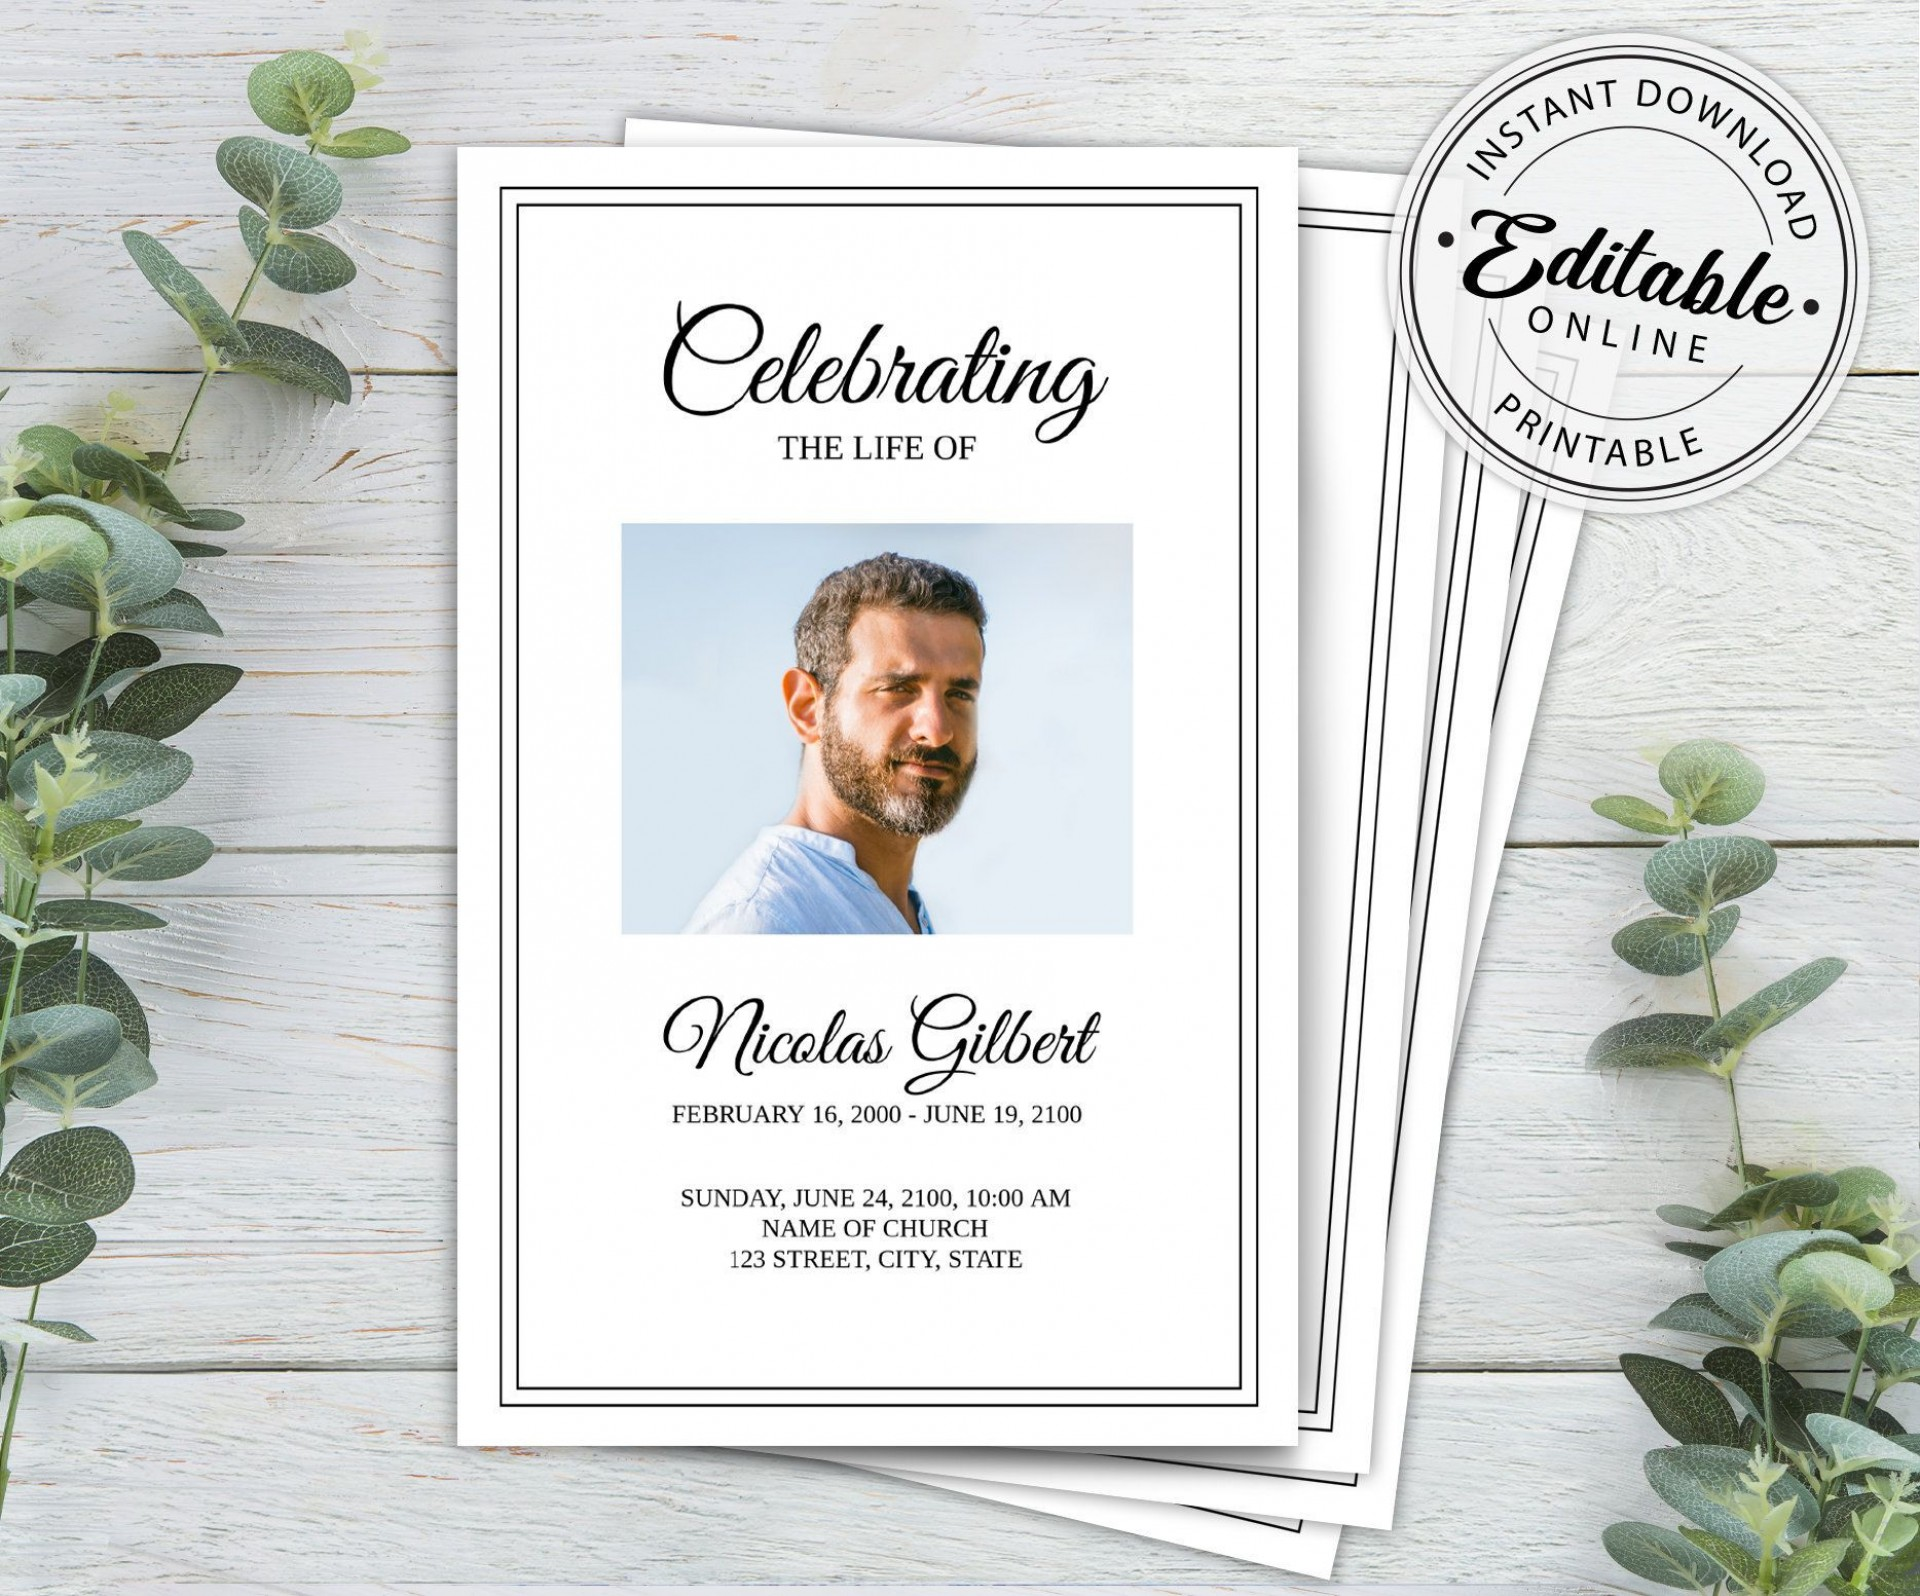 003 Incredible Free Editable Celebration Of Life Program Template High Def 1920